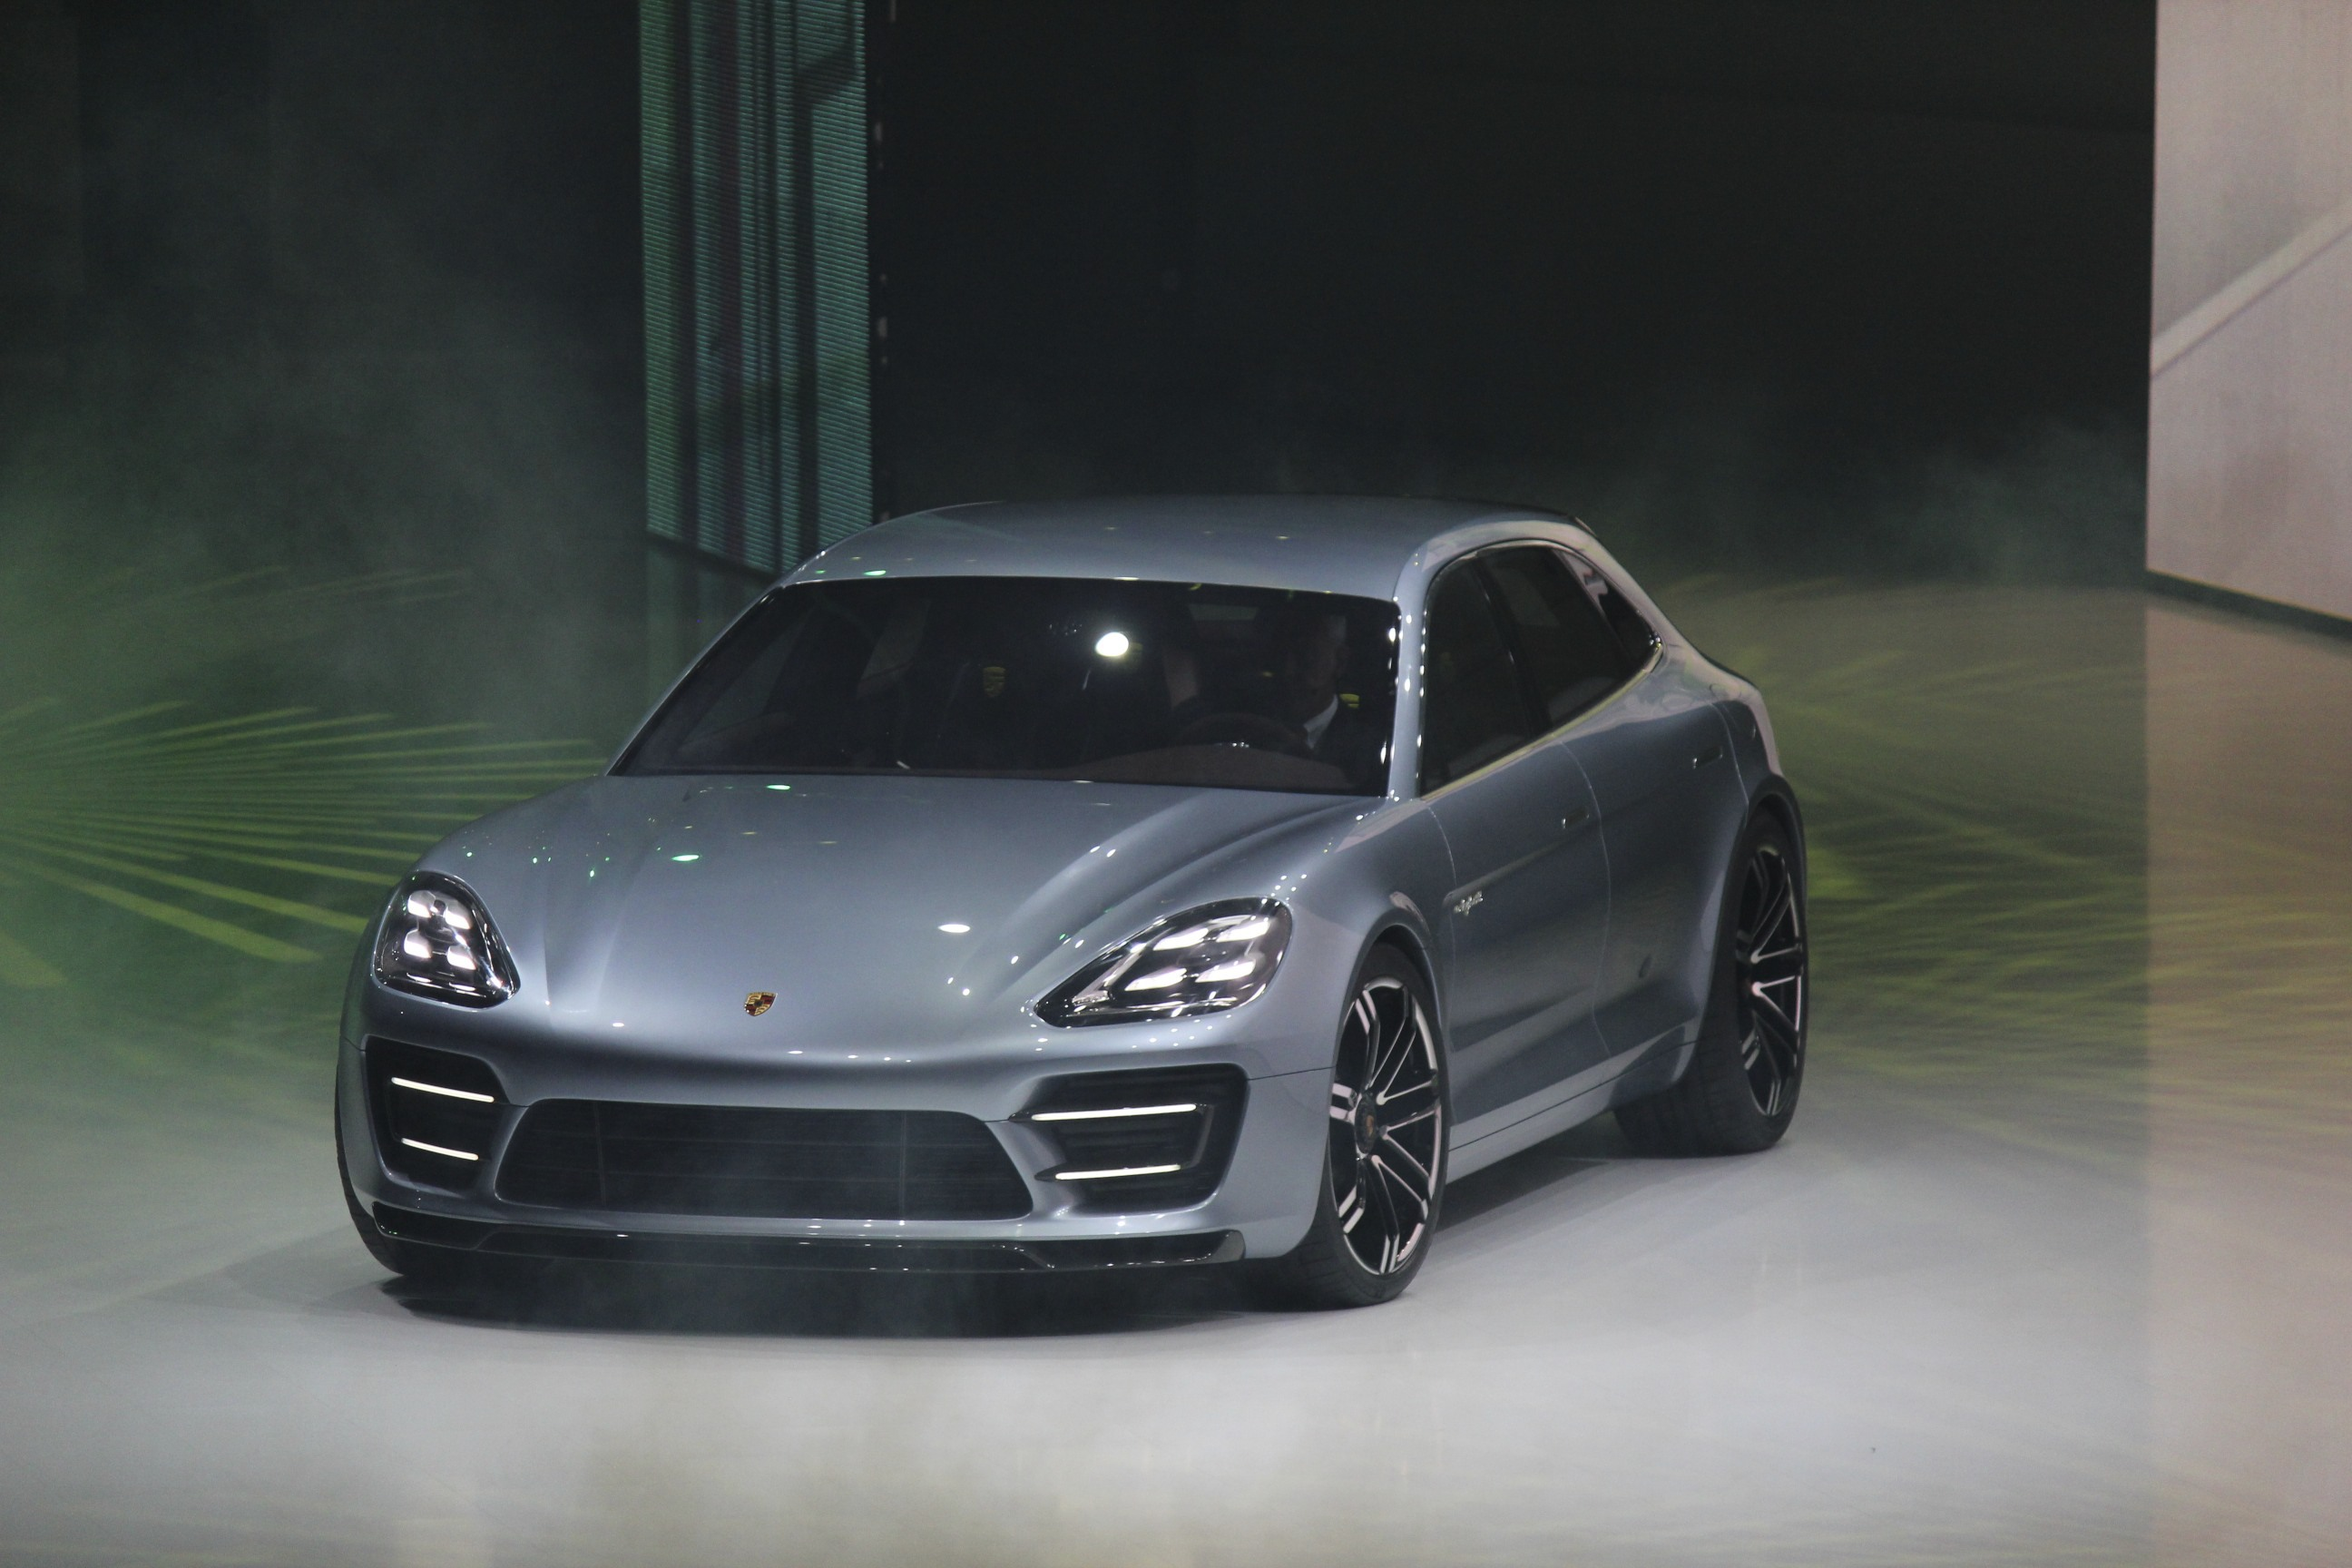 Porsche Panamera Sport Turismo Wallpapers Images Photos